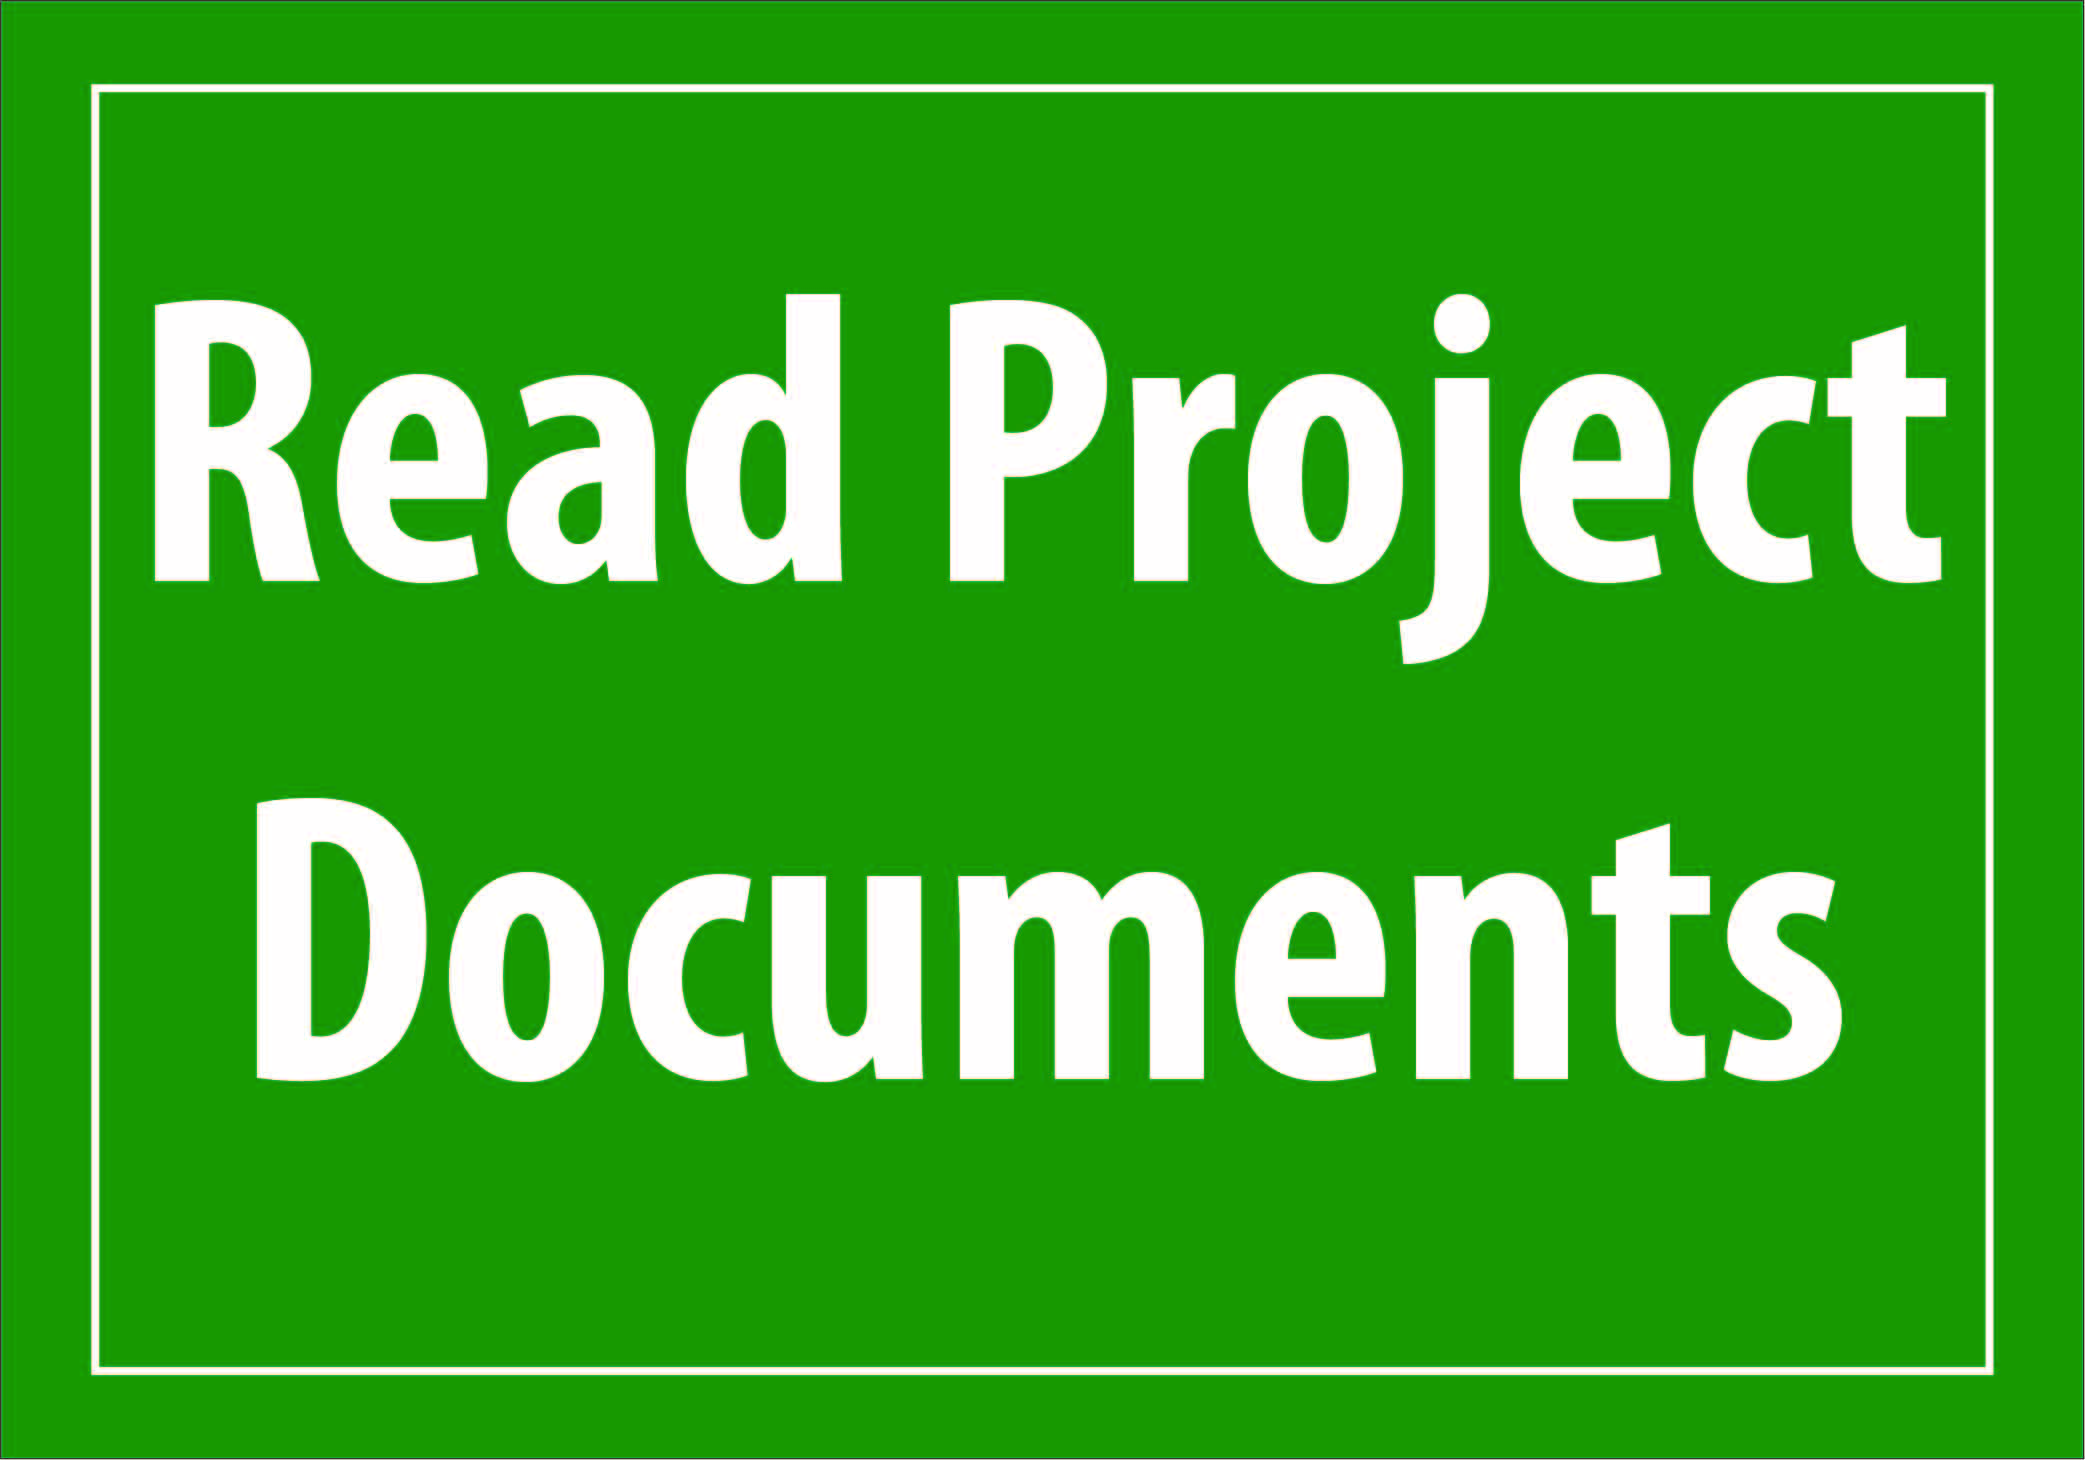 Read Project Documents 1 Jpg